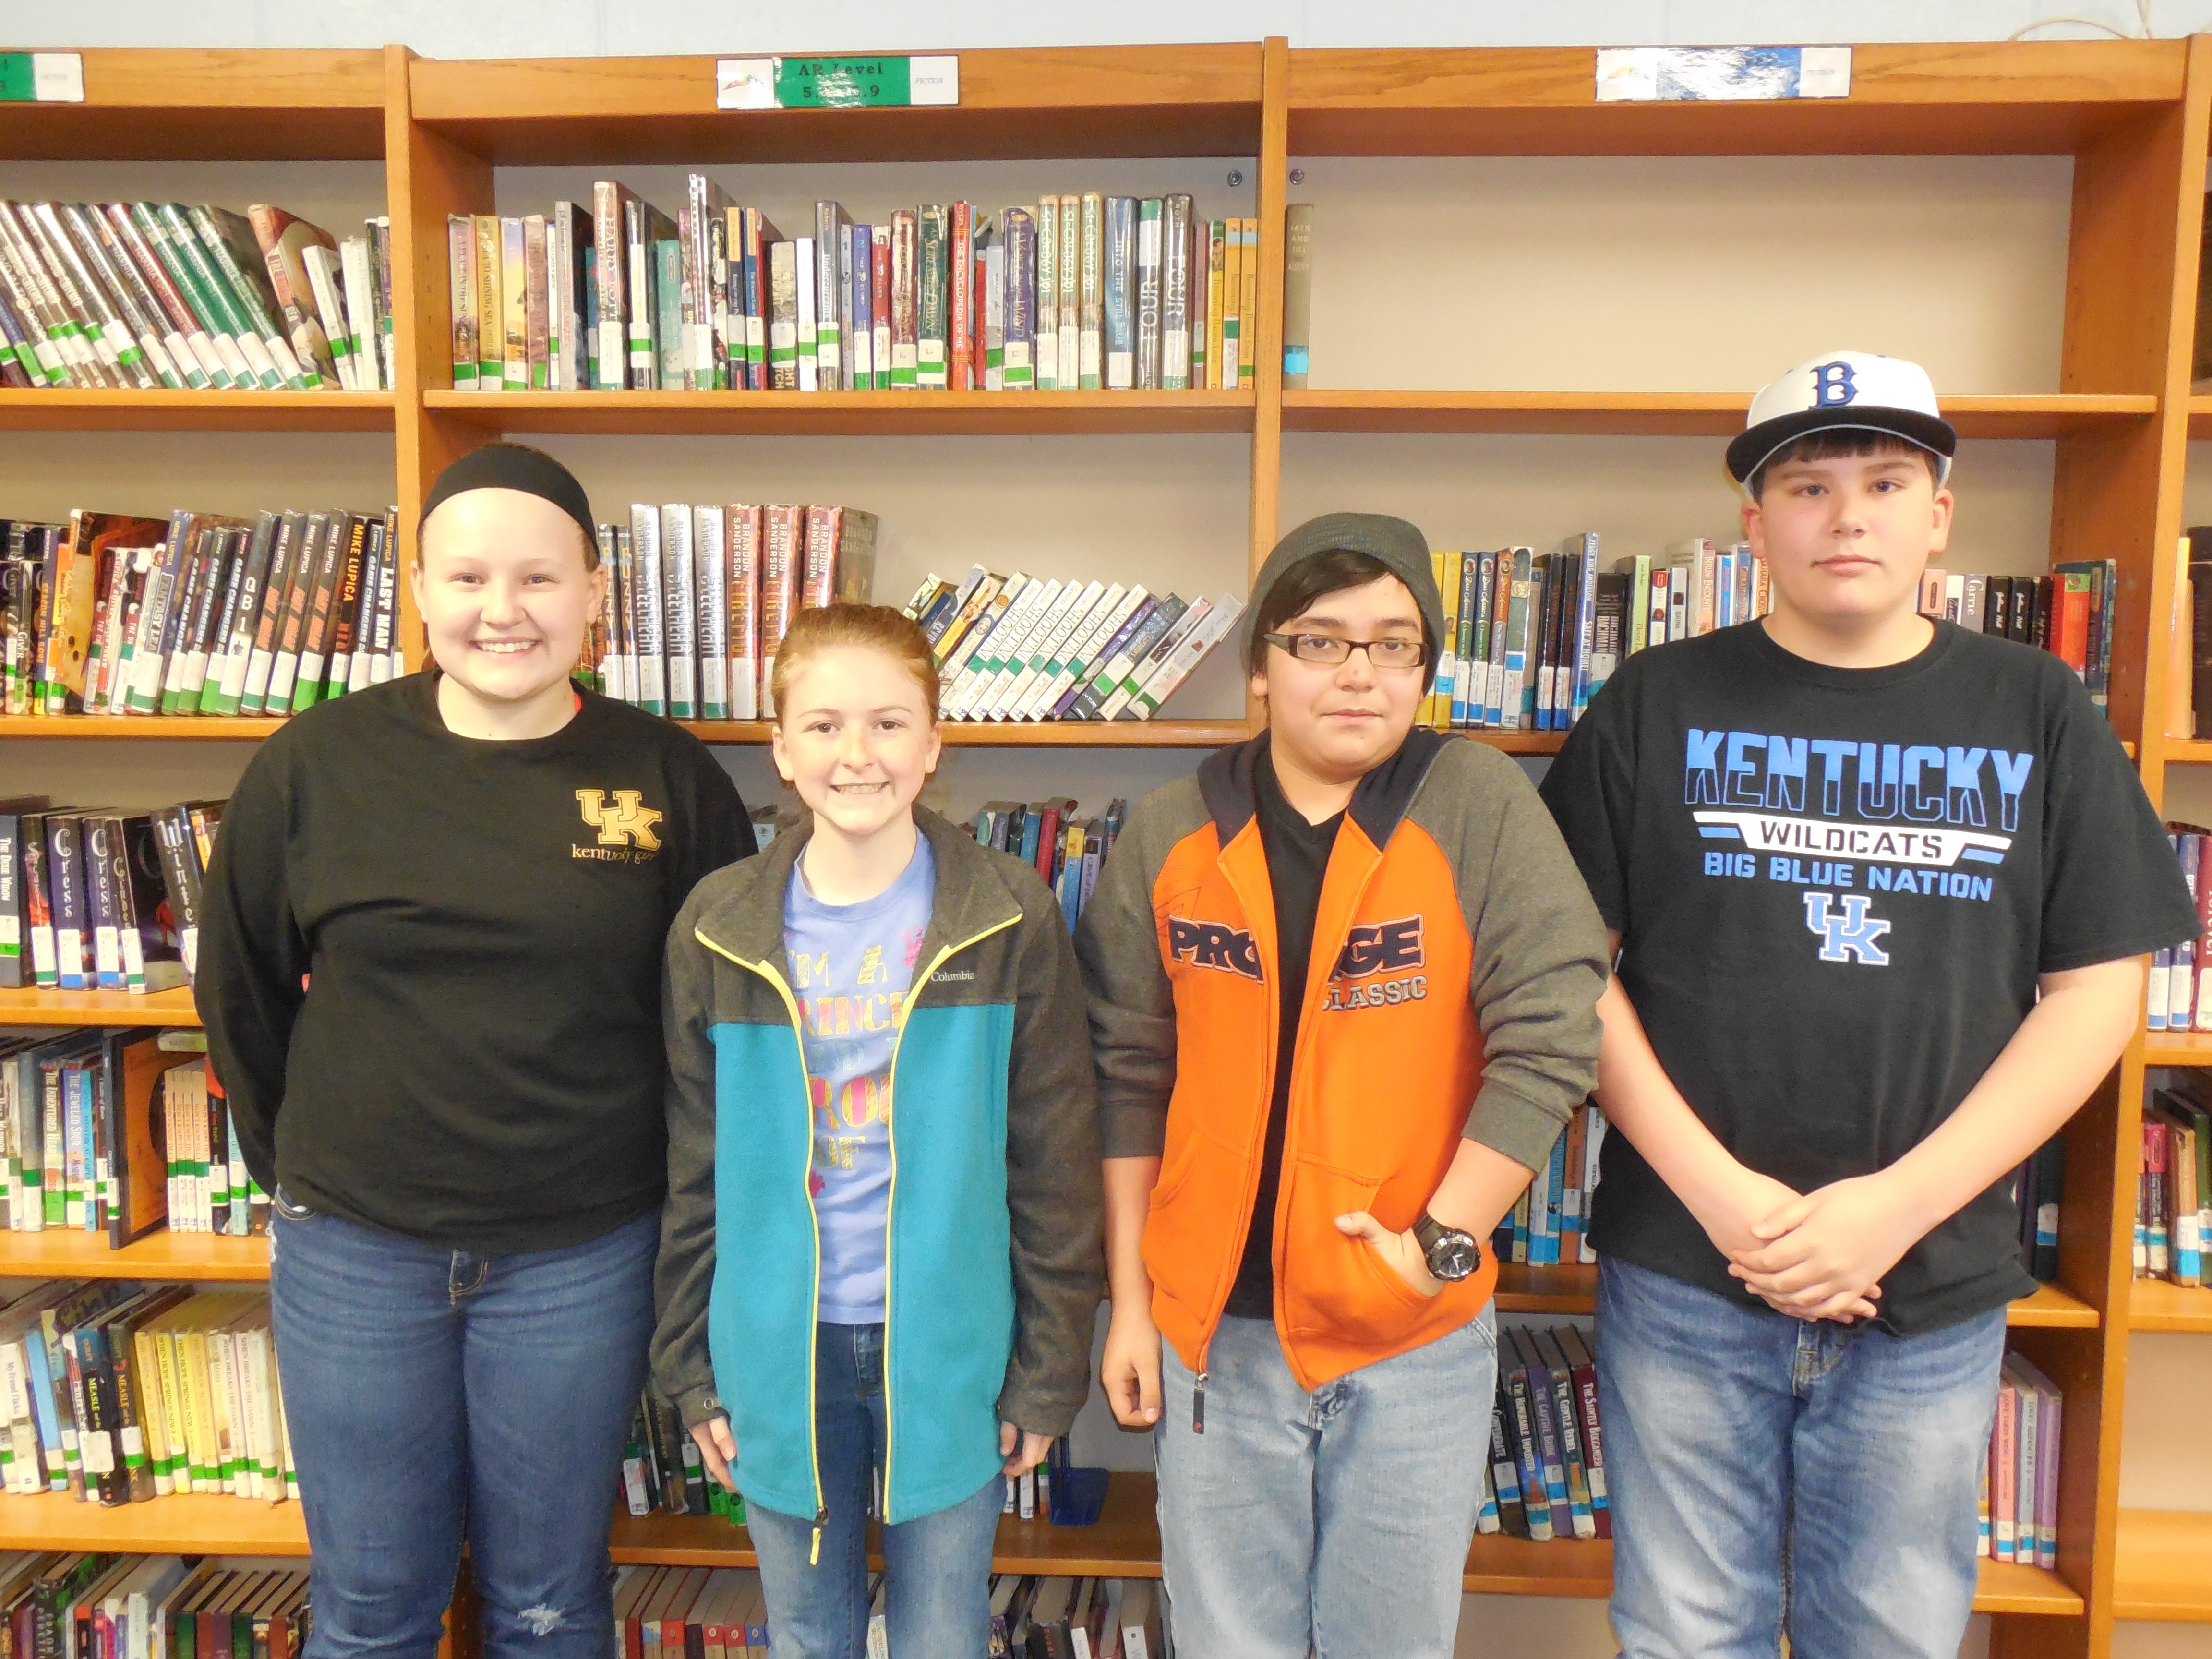 The winning team from the 7th & 8th grade competition was Read Athletics.  Team members include Katie Thurman, Makenzie Cope, Eli Rains, and Evan Claborn.